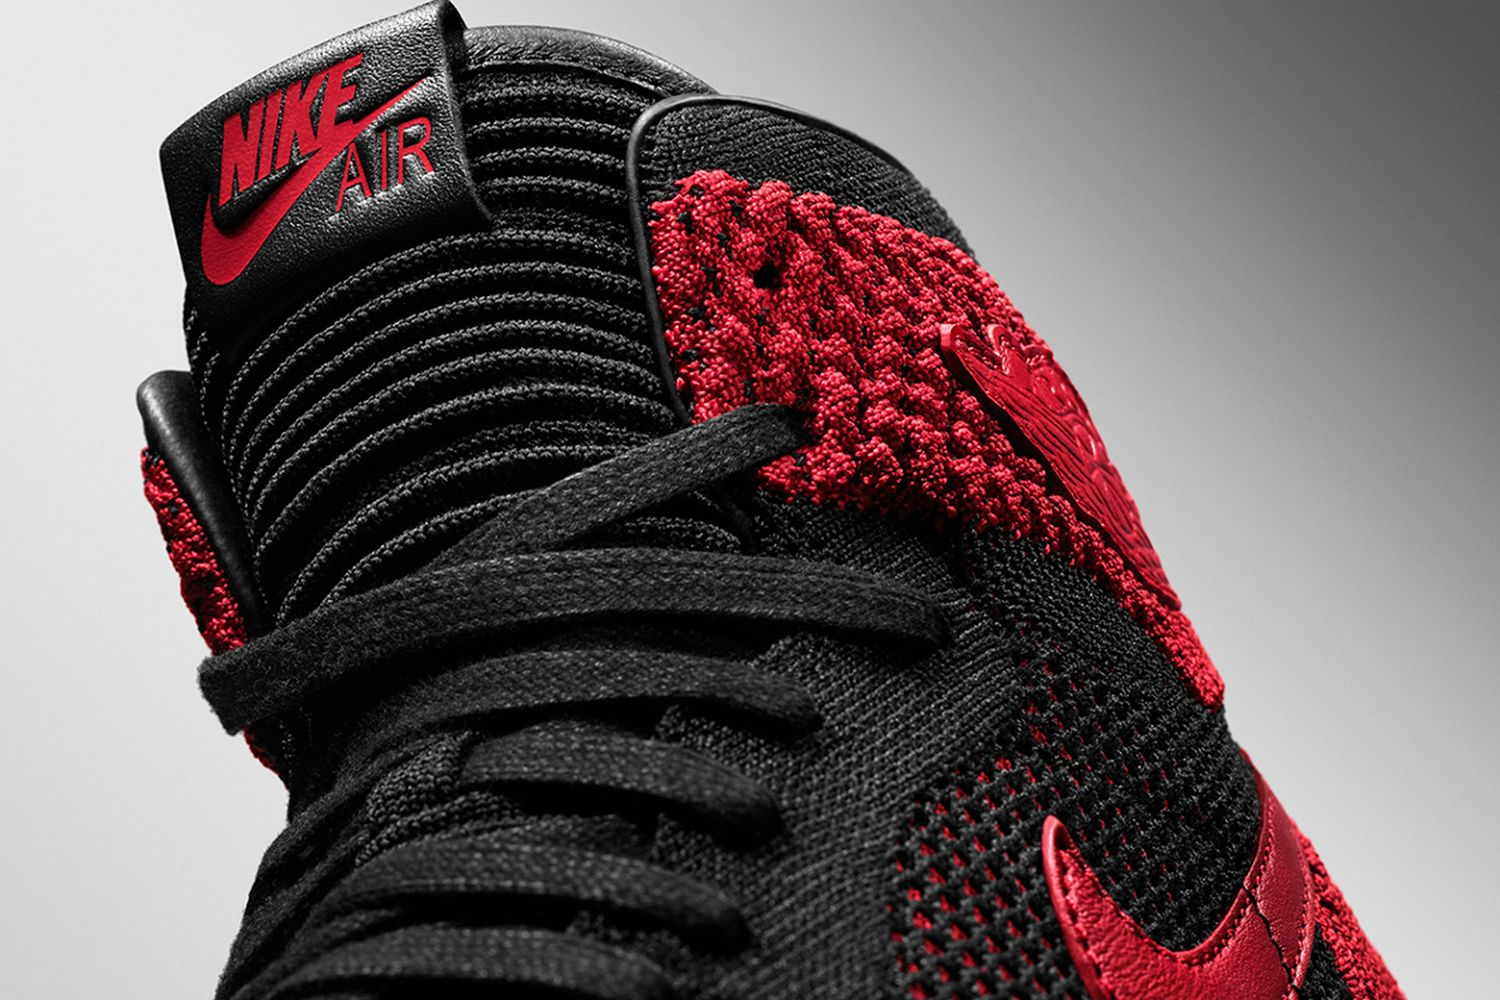 Air Jordan 1 High Flyknit